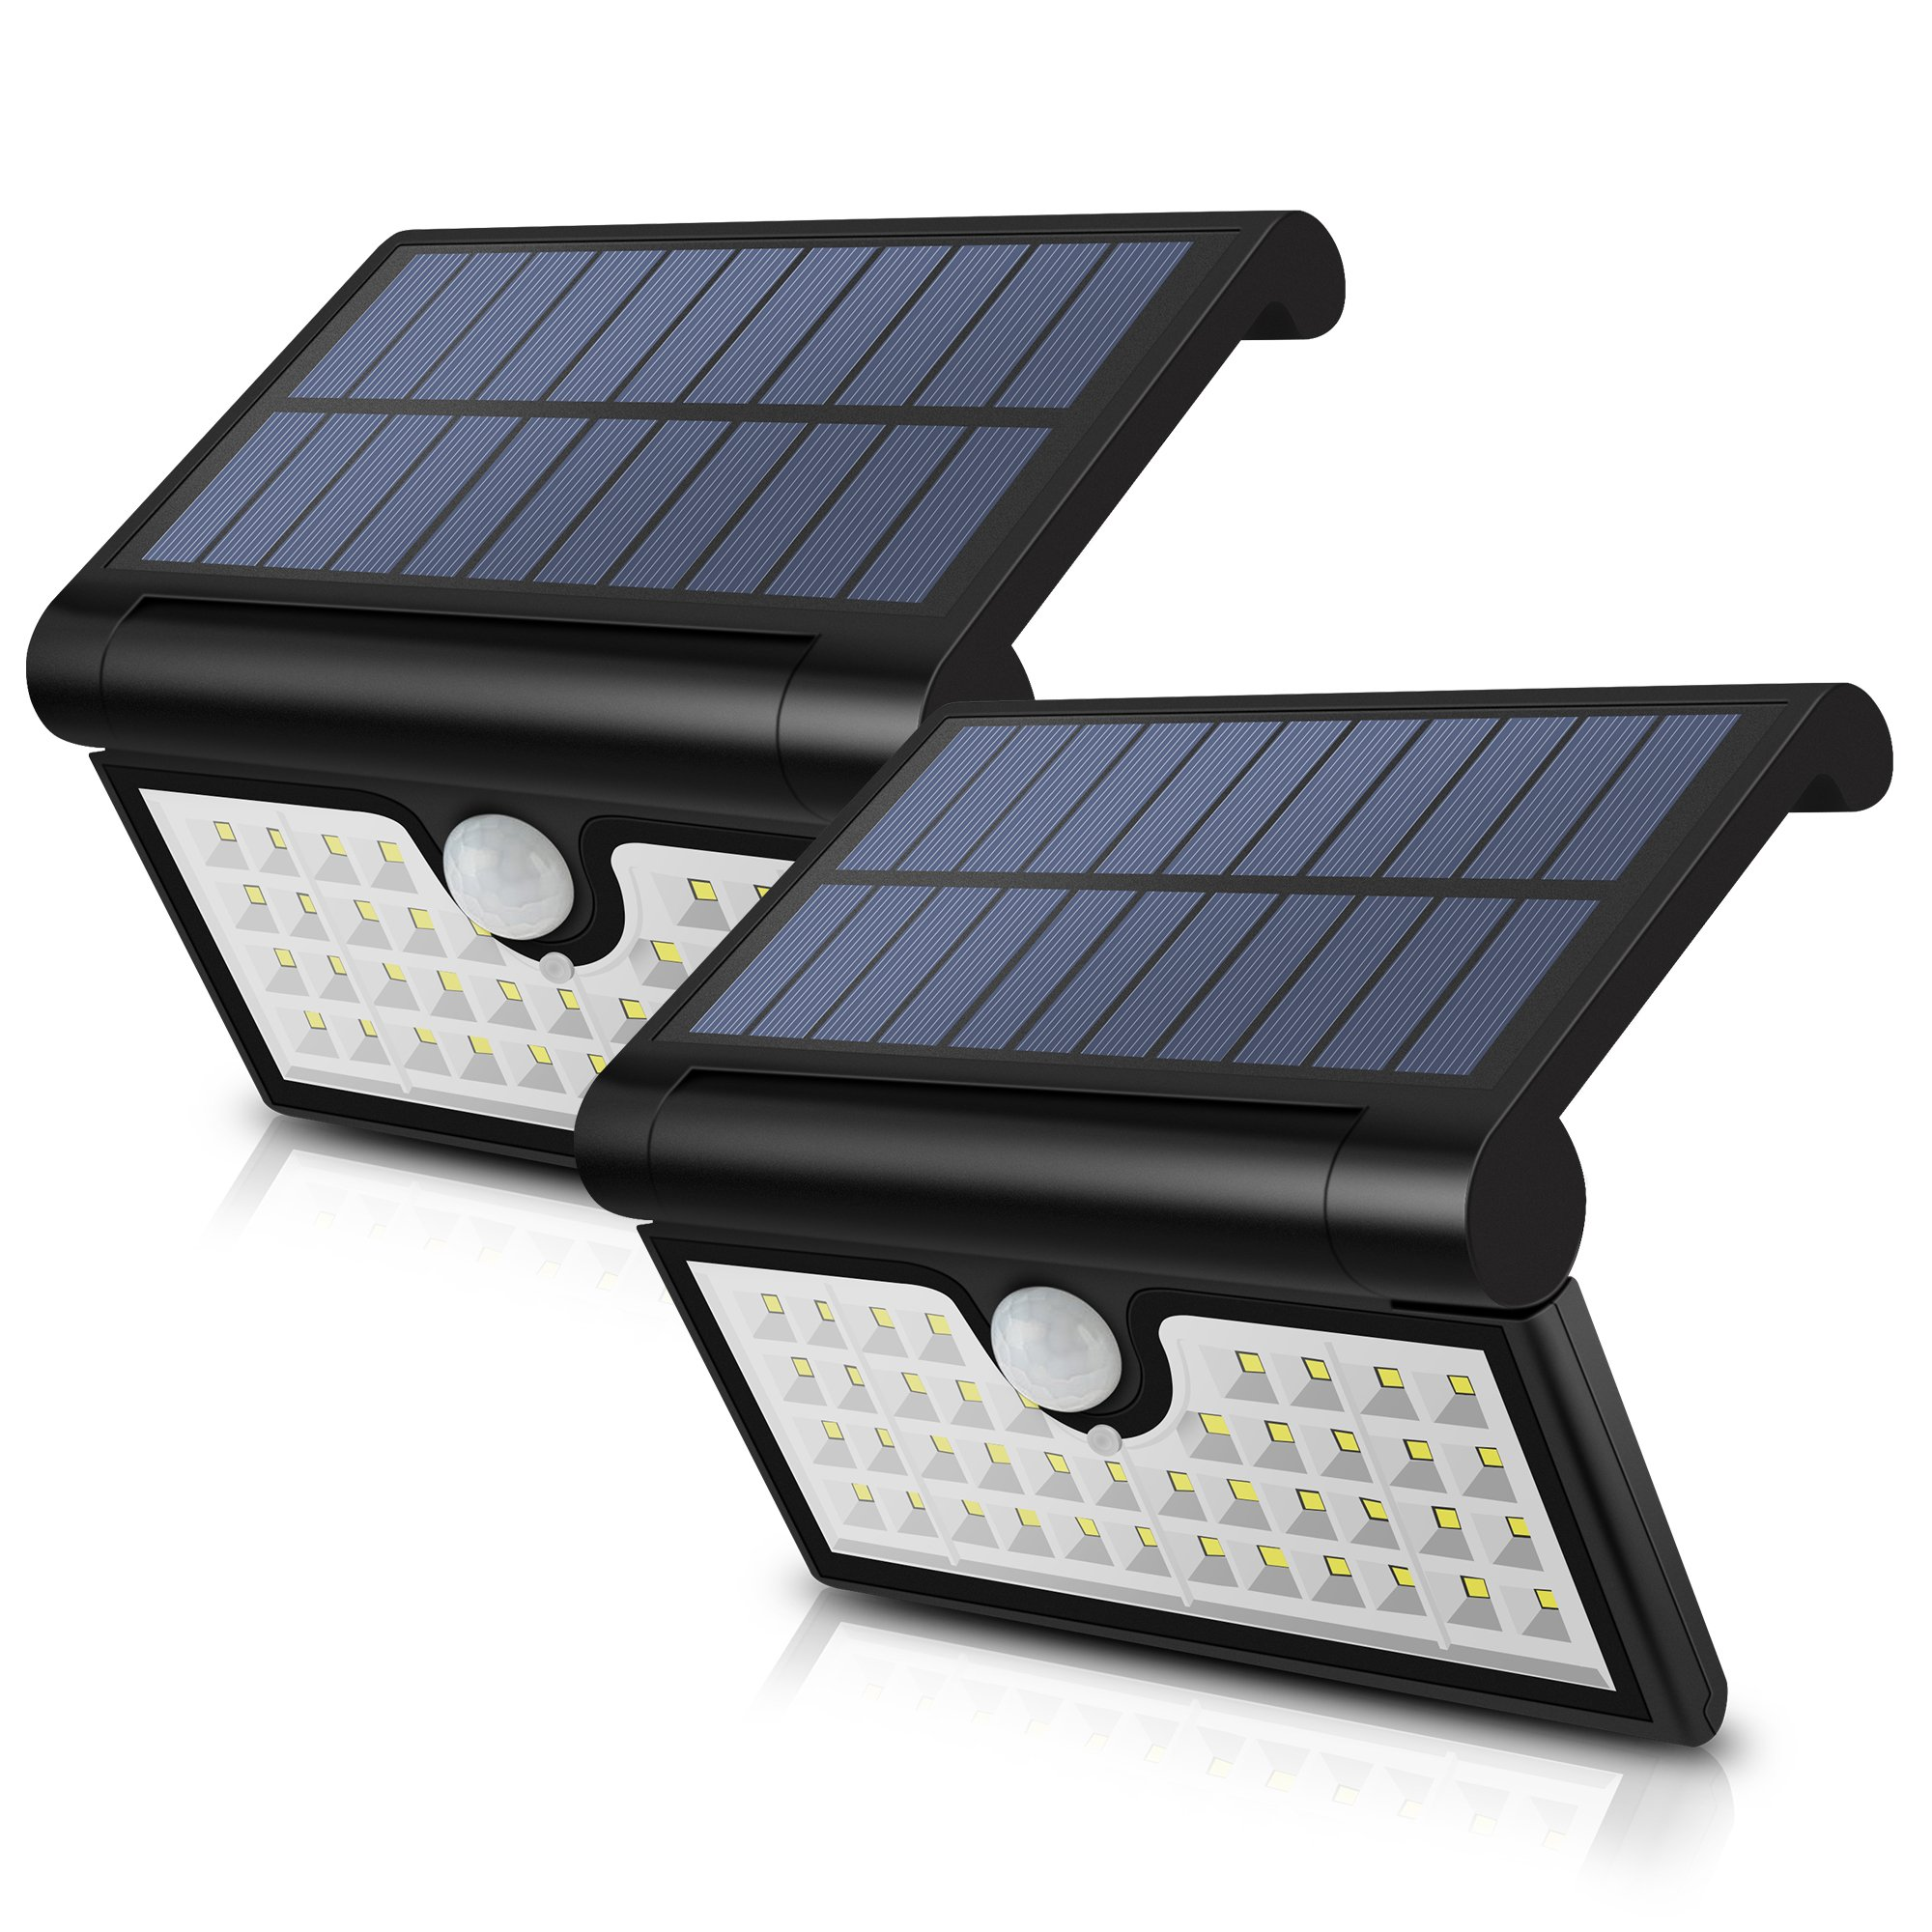 SunPatio Outdoor Solar Light 42 LED, Foldable Wireless Motion Sensor Wall Lights, Portable Camping Waterproof Lights, Home Security Lights for Yard, Garden, Garage, Driveway, Easy to Install, 2 Pack